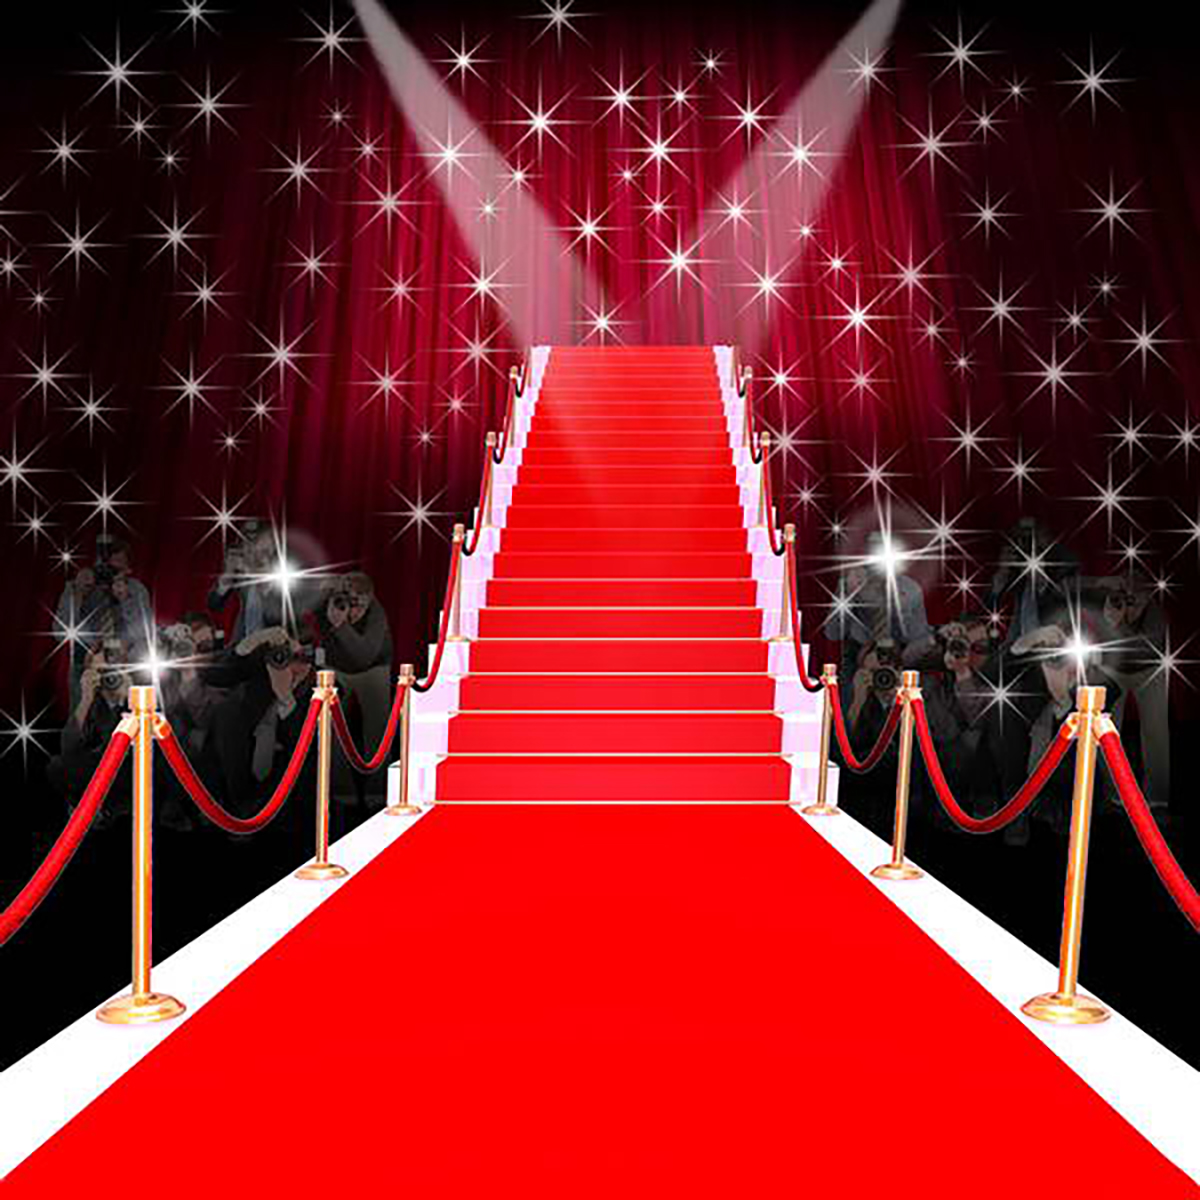 Red Carpet Background Www Pixshark Com Images